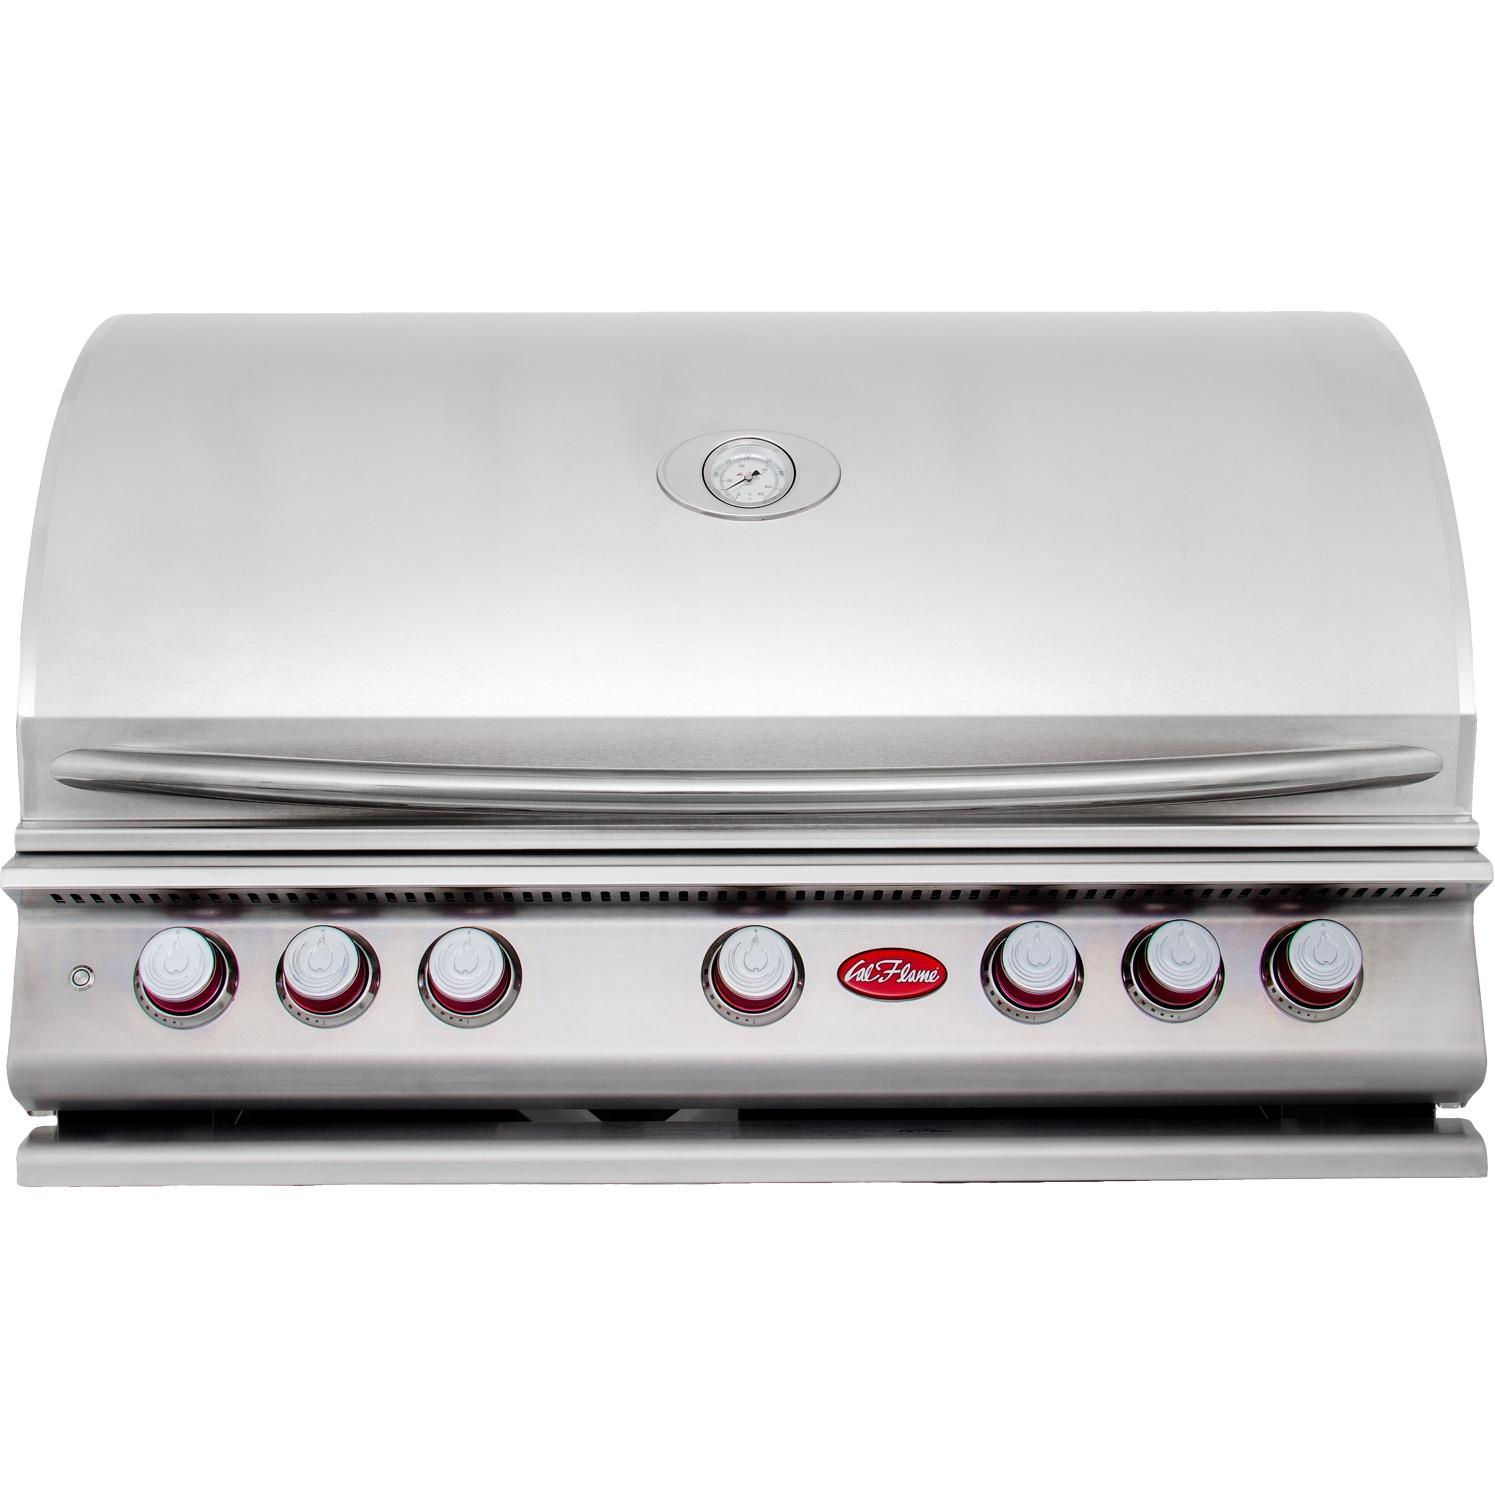 Cal Flame P5 39-inch 5-burner Built-in Natural Gas Grill (ships As Propane With Conversion Fittings) - Bbq13p05